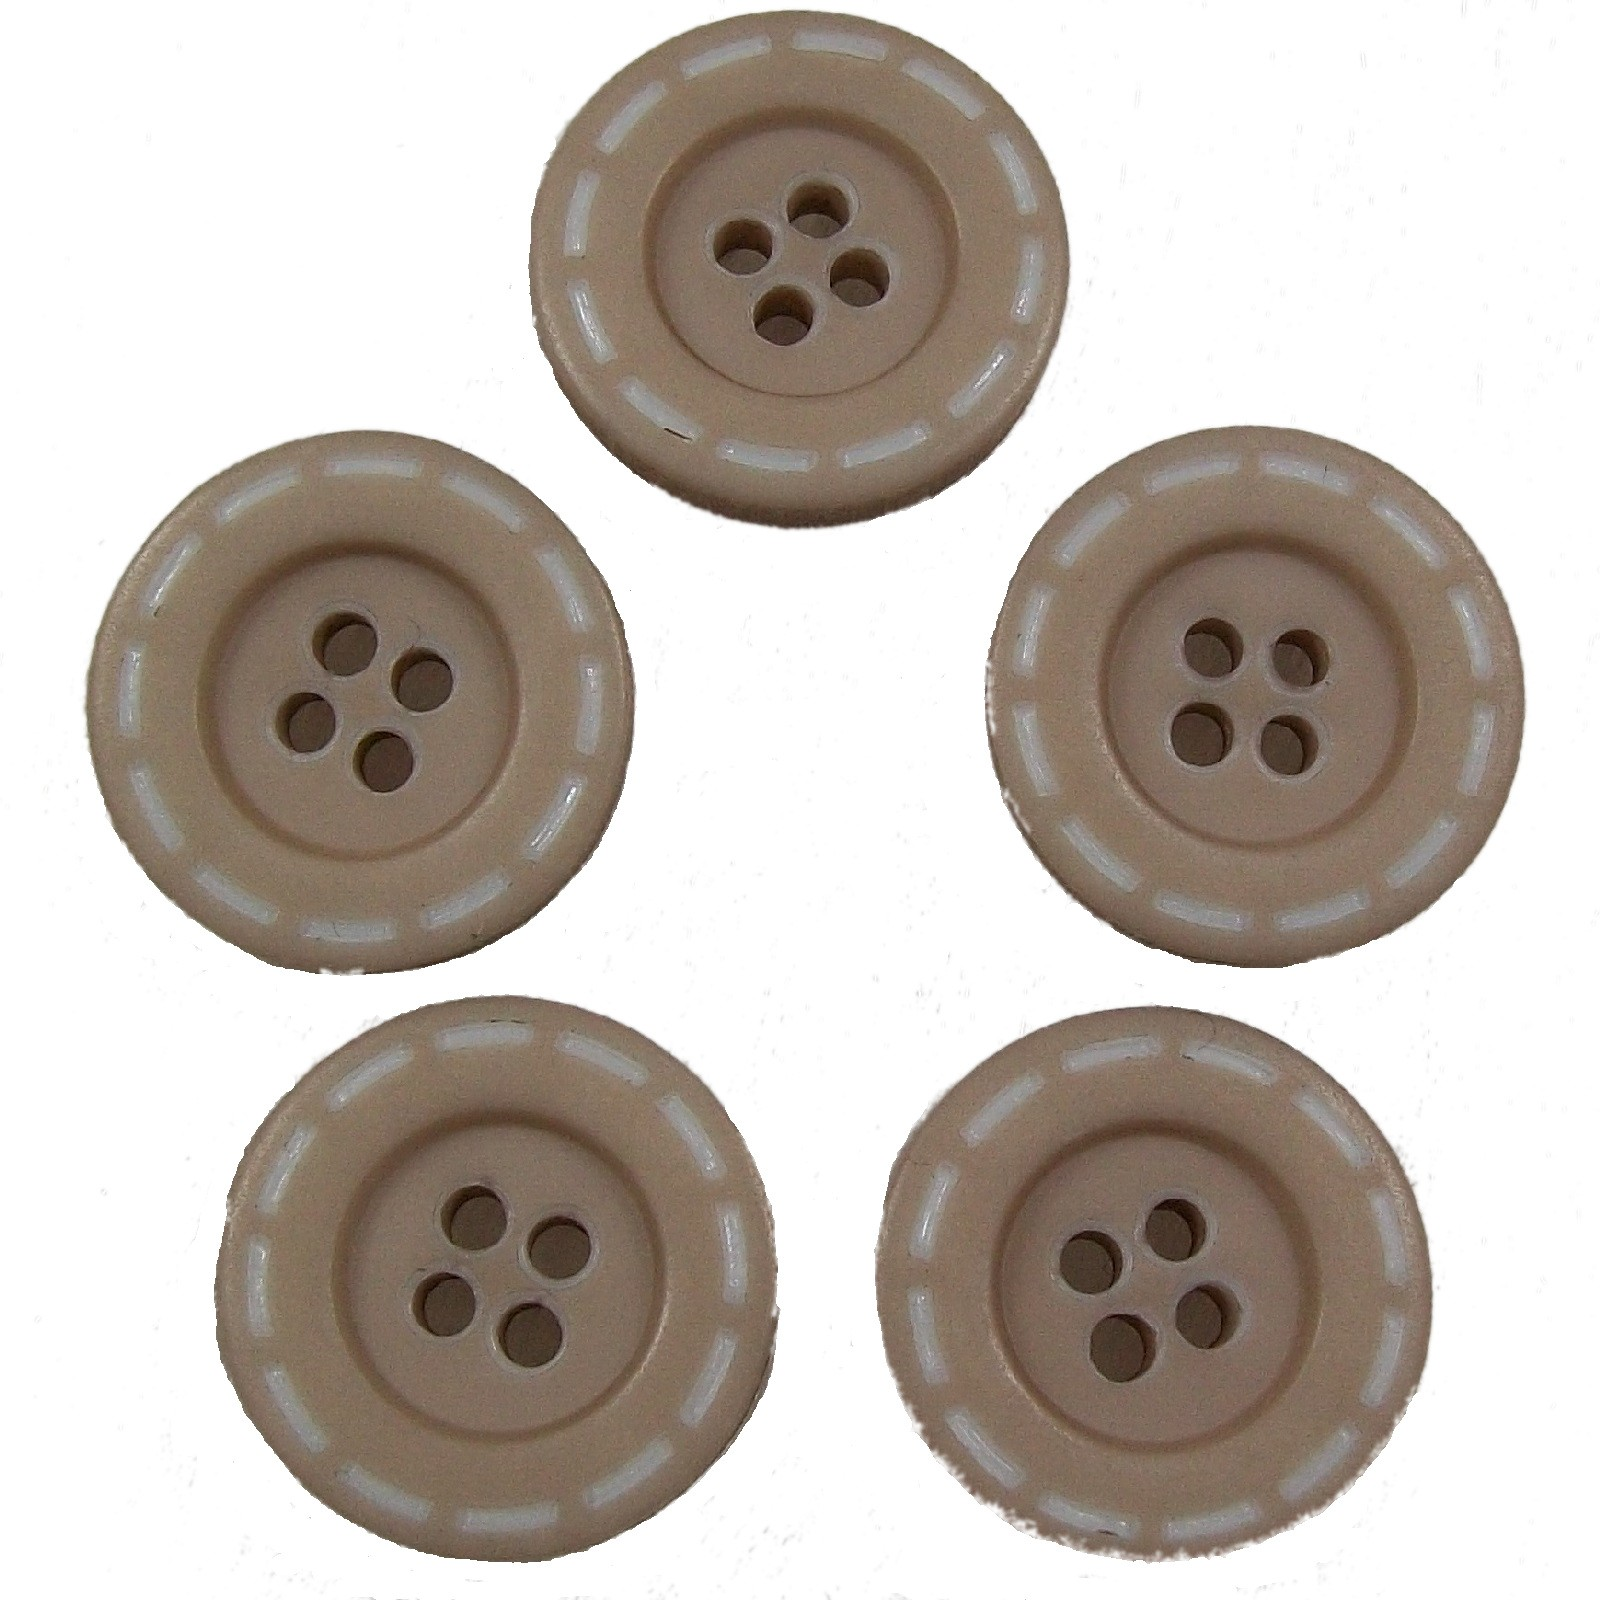 Stitched Edge Effect 4 Hole Buttons 17mm Light Brown Pack of 5